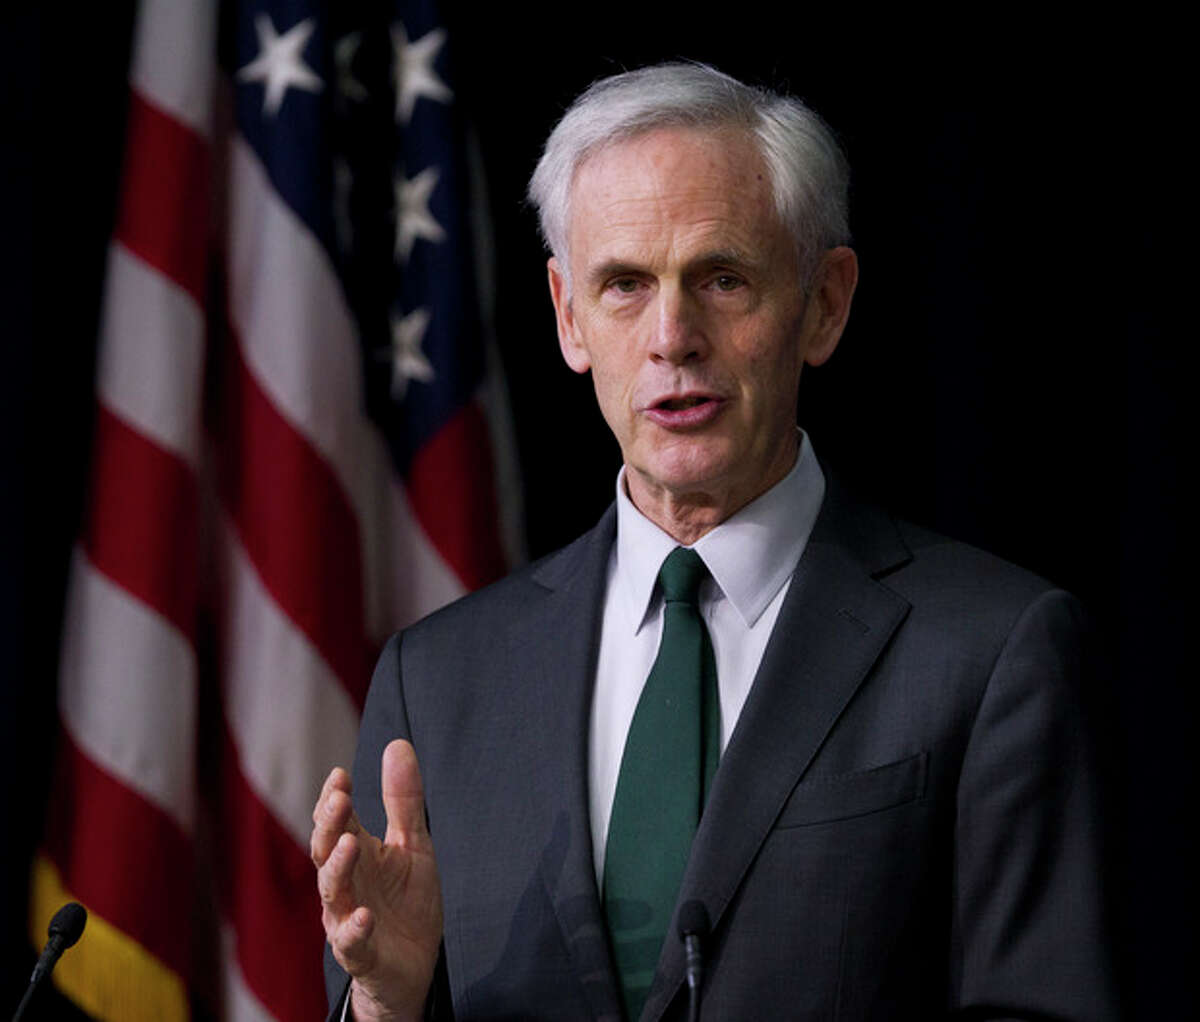 FILE - In this February 23, 2012 file photo, Secretary of Commerce John Bryson speaks about privacy at the Eisenhower Executive Office Building in Washington. Bryson says he is resigning after suffering a seizure earlier this month in the Los Angeles area. (AP Photo/Manuel Balce Ceneta)